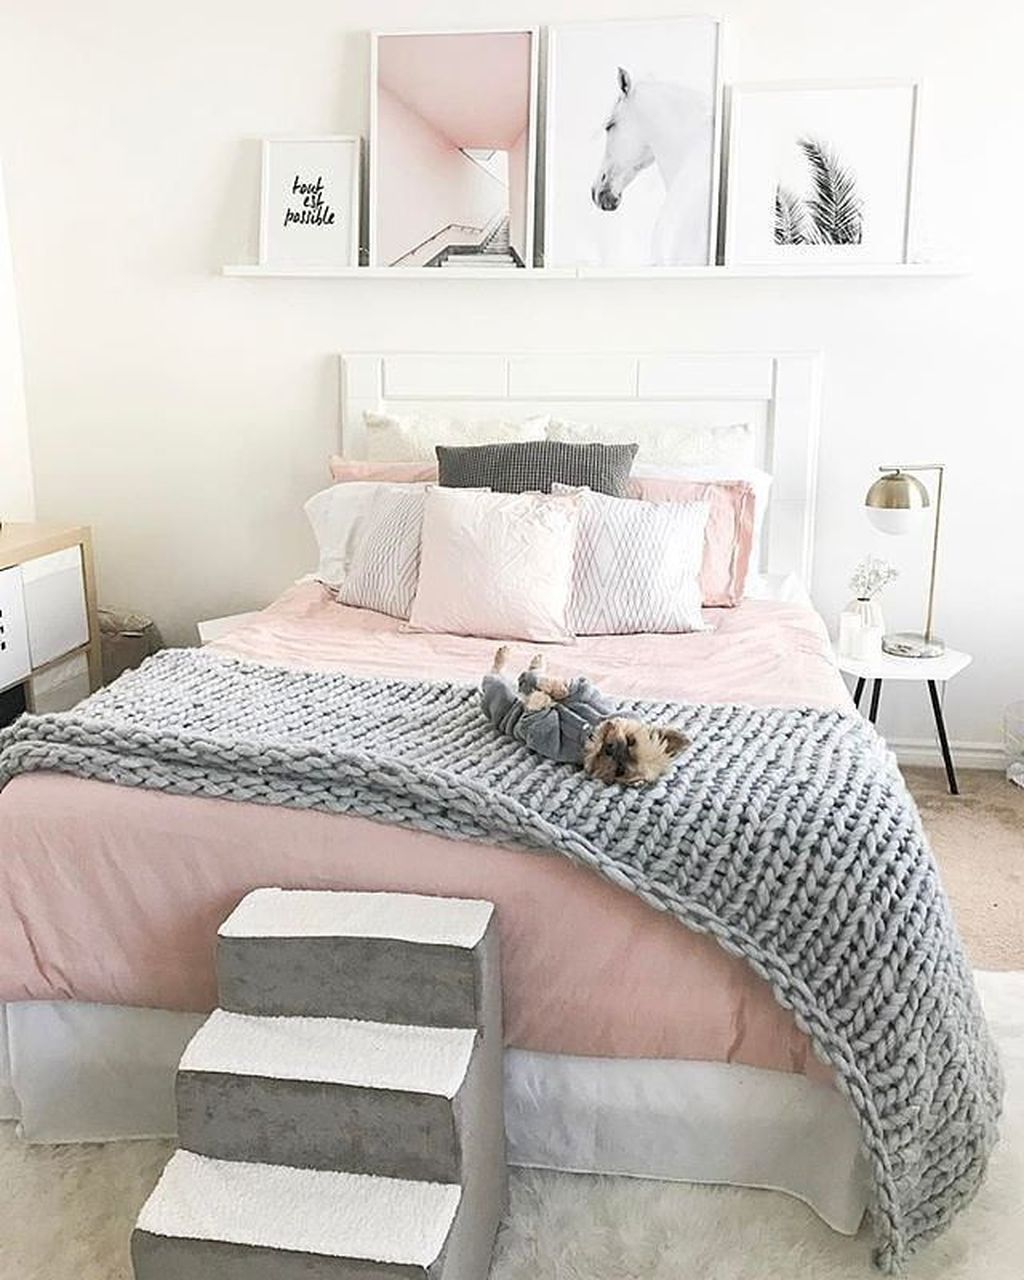 30 Cute Pink Bedroom Design For Your Valentines Day Schlafzimmer Design Luxusschlafzimmer Schlafzimmer